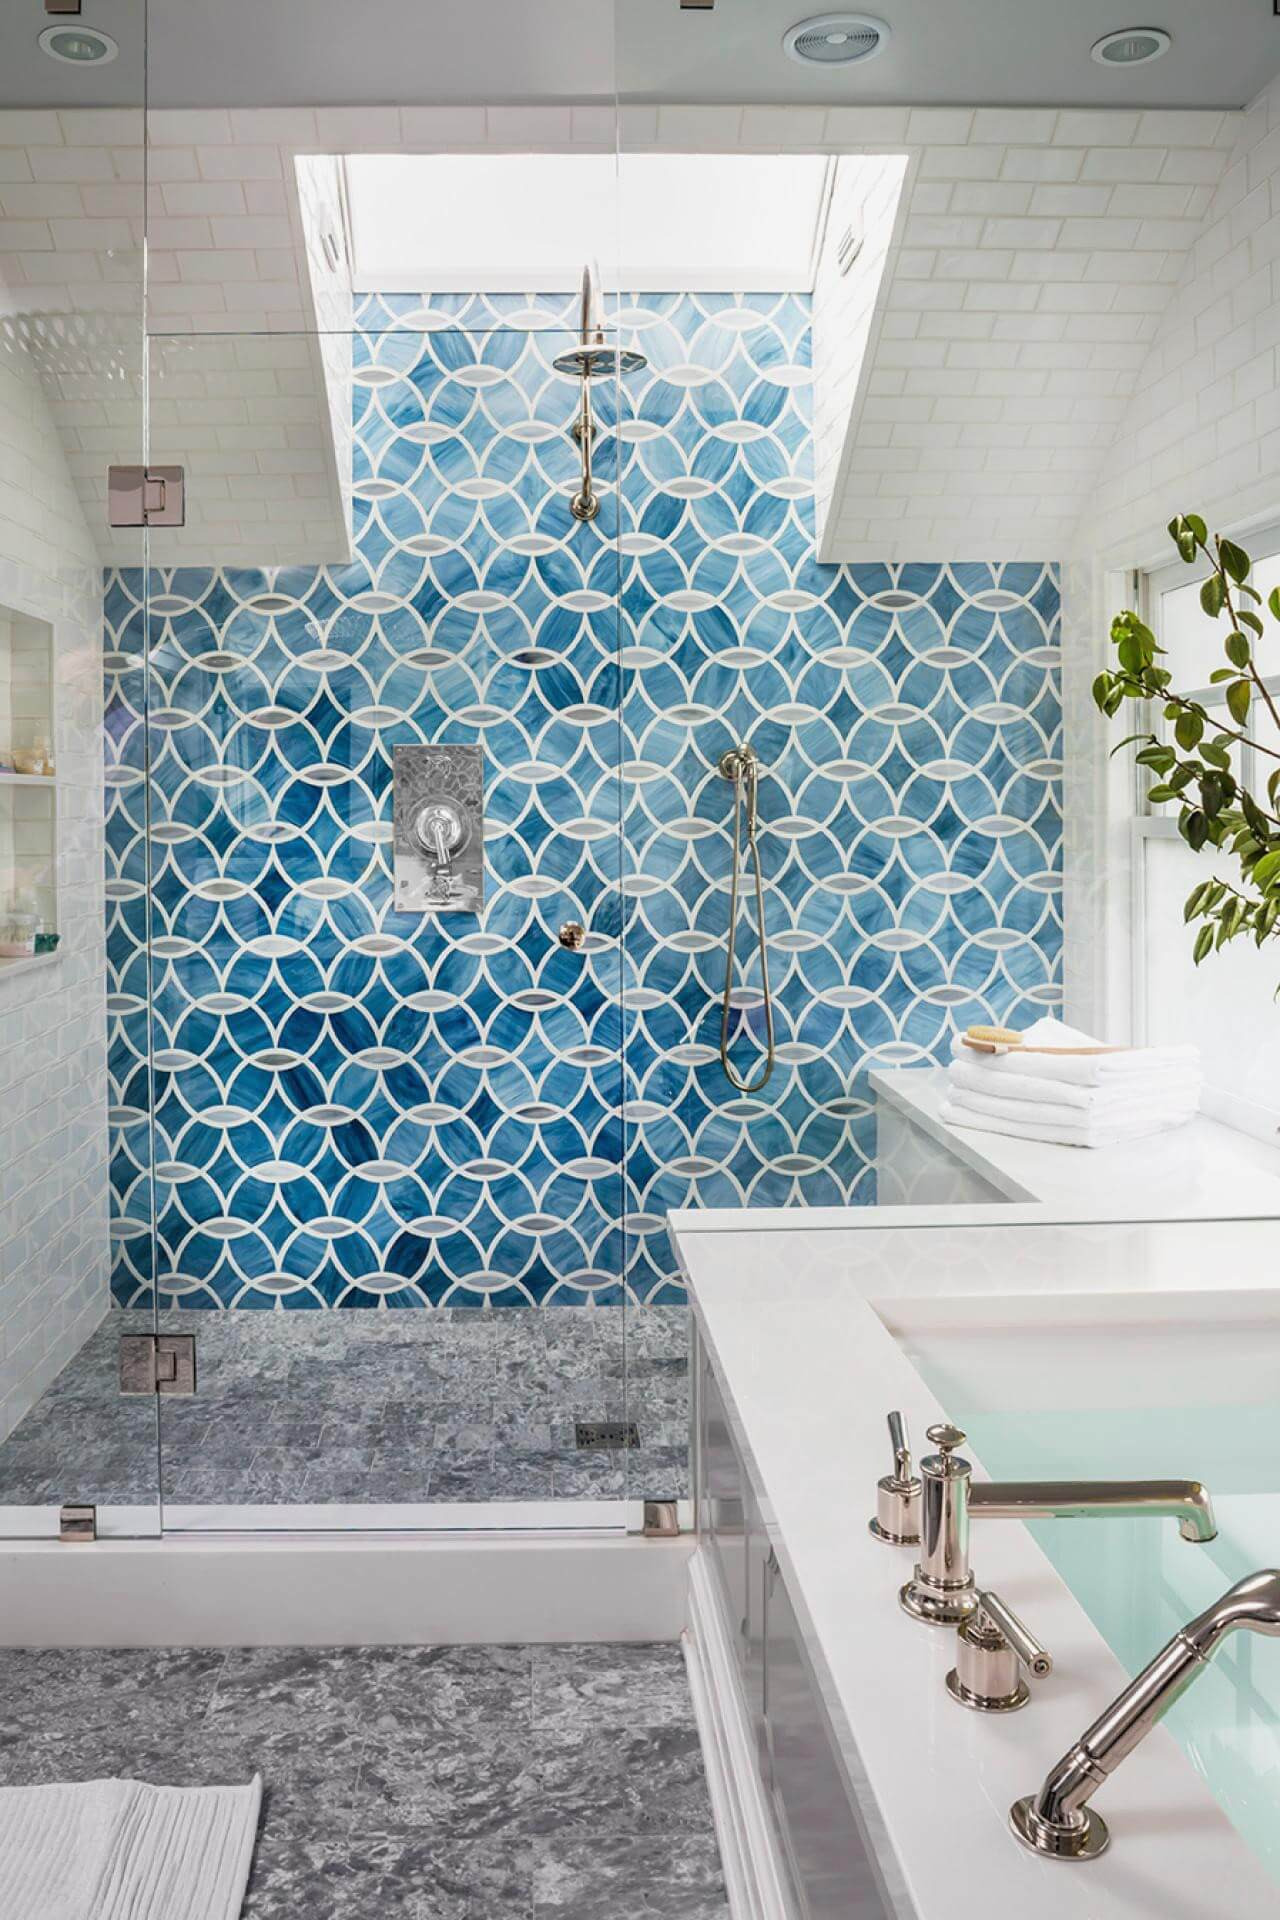 Bathroom Decorative Tiles New Our Favorite Perfectly Patterned Tiles